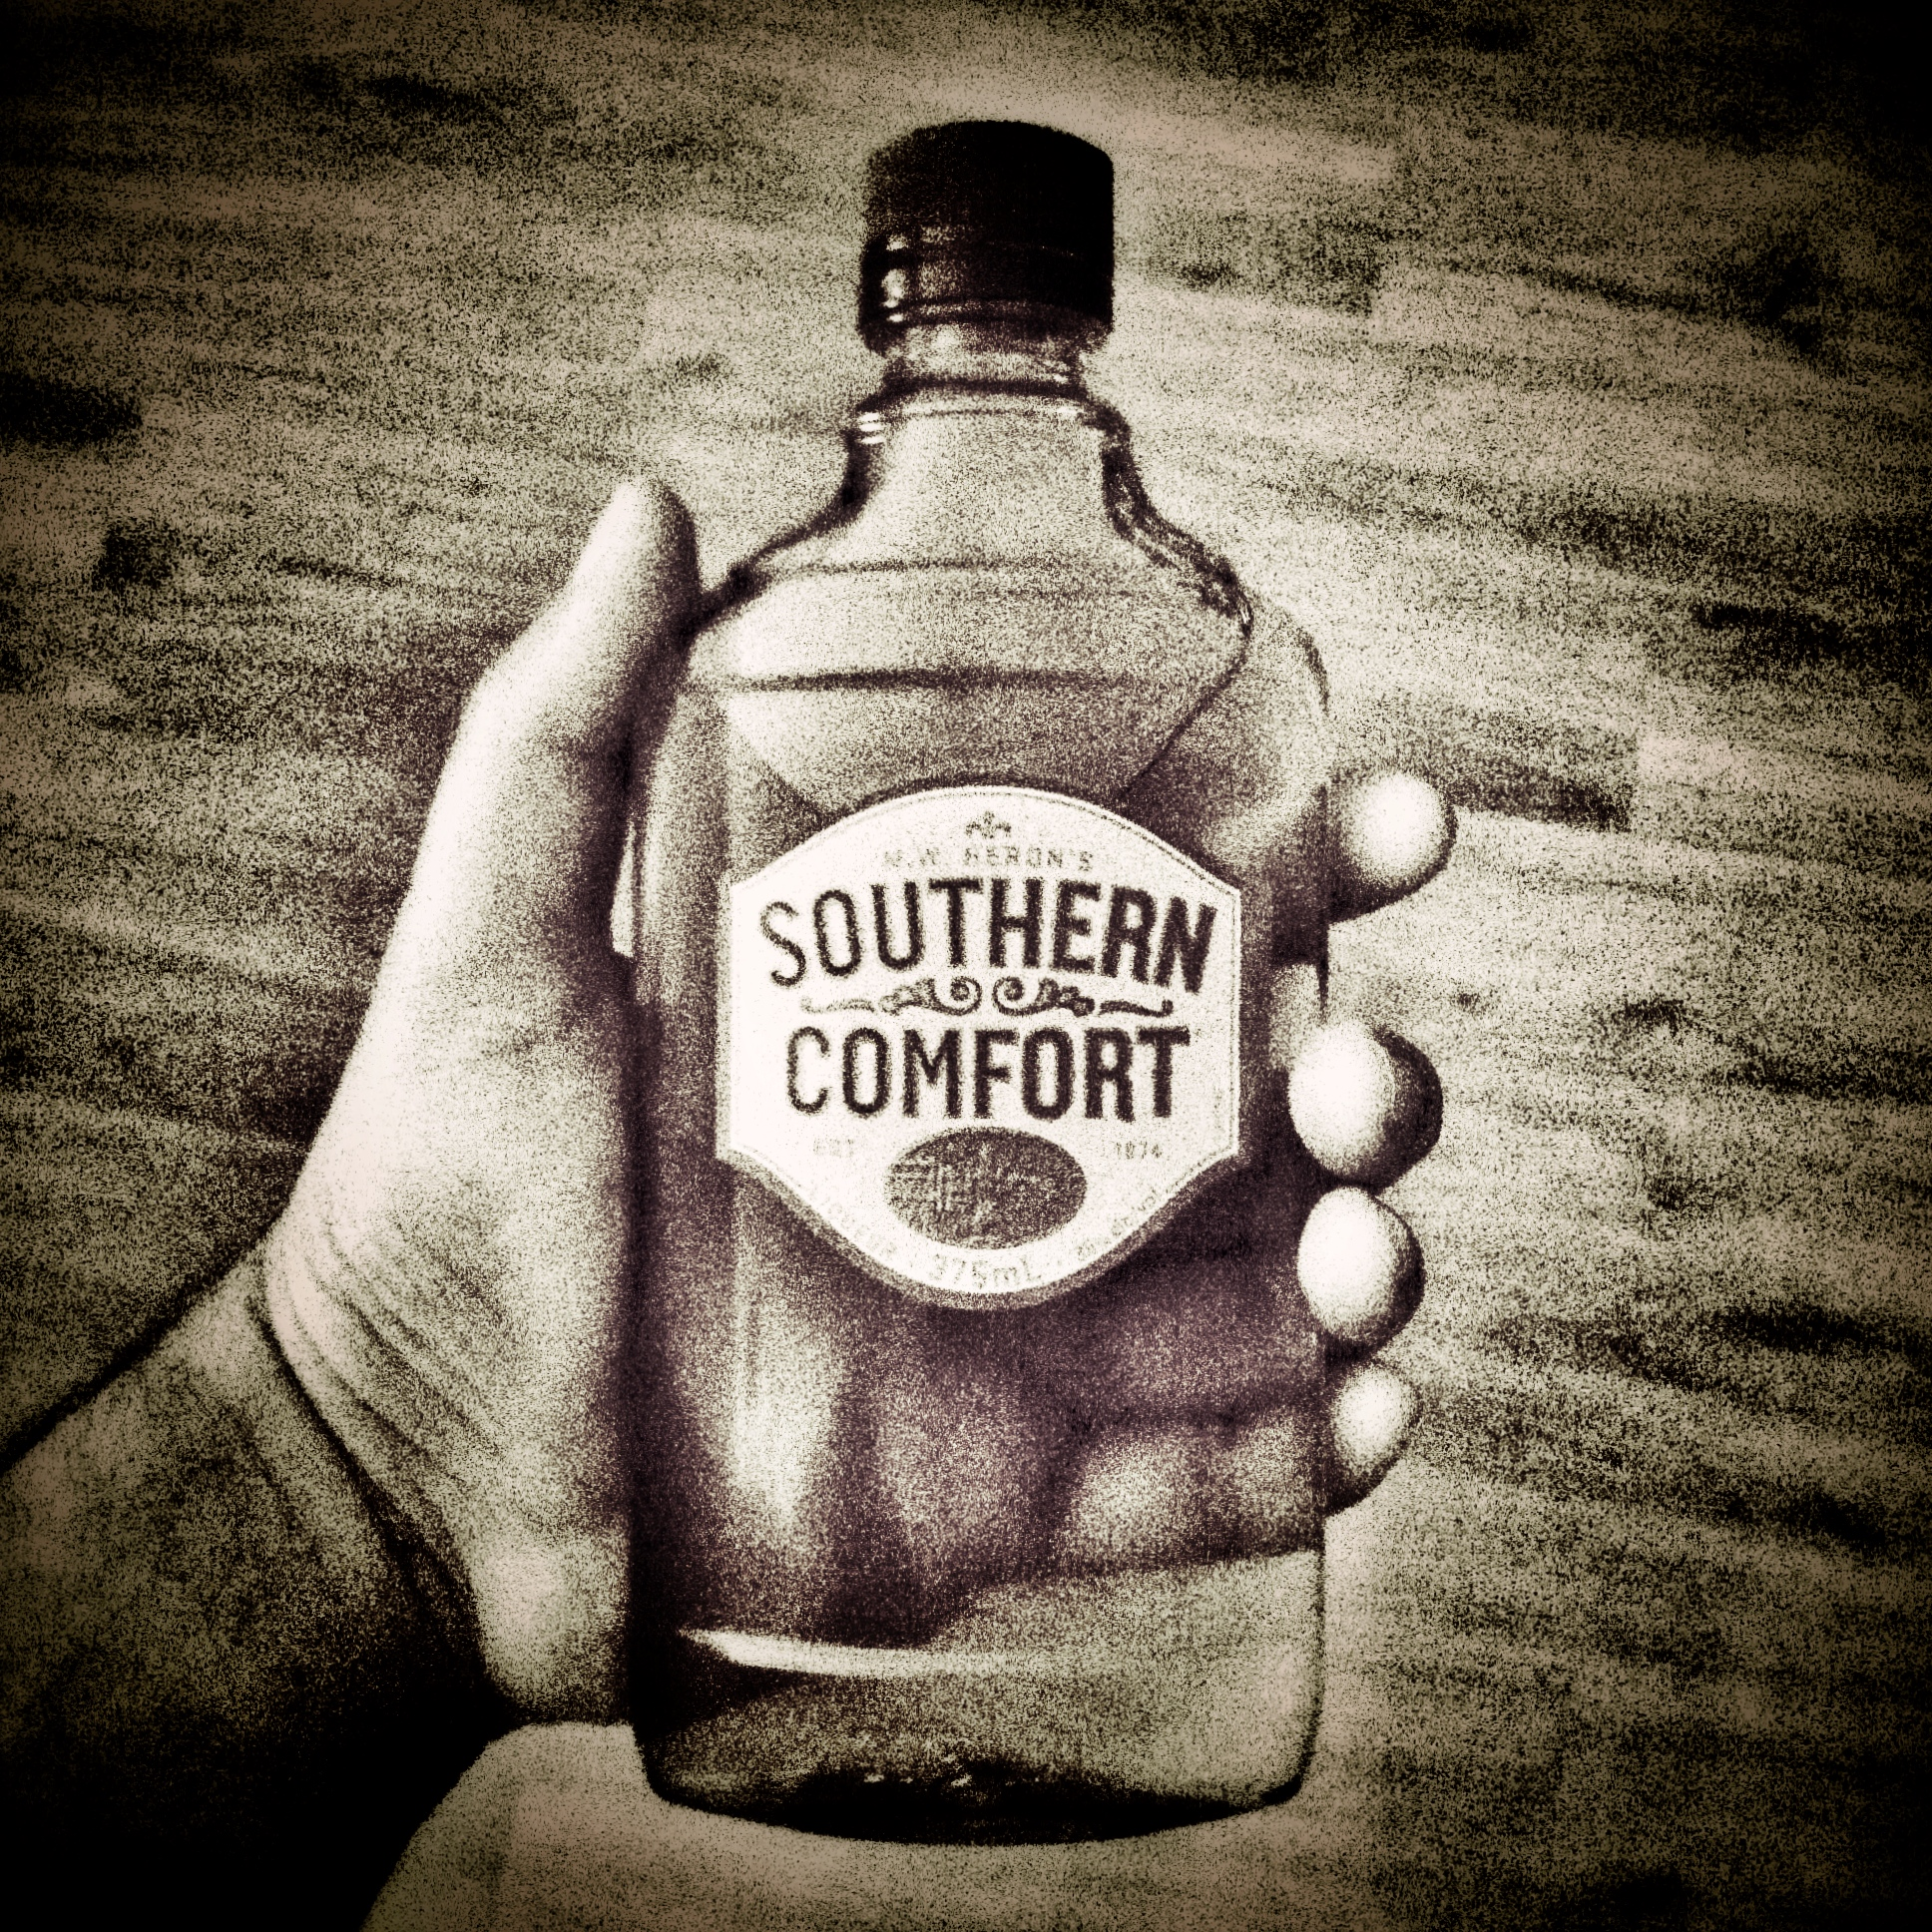 Why Jack Daniel's owner decided to sell Southern Comfort brand to rival